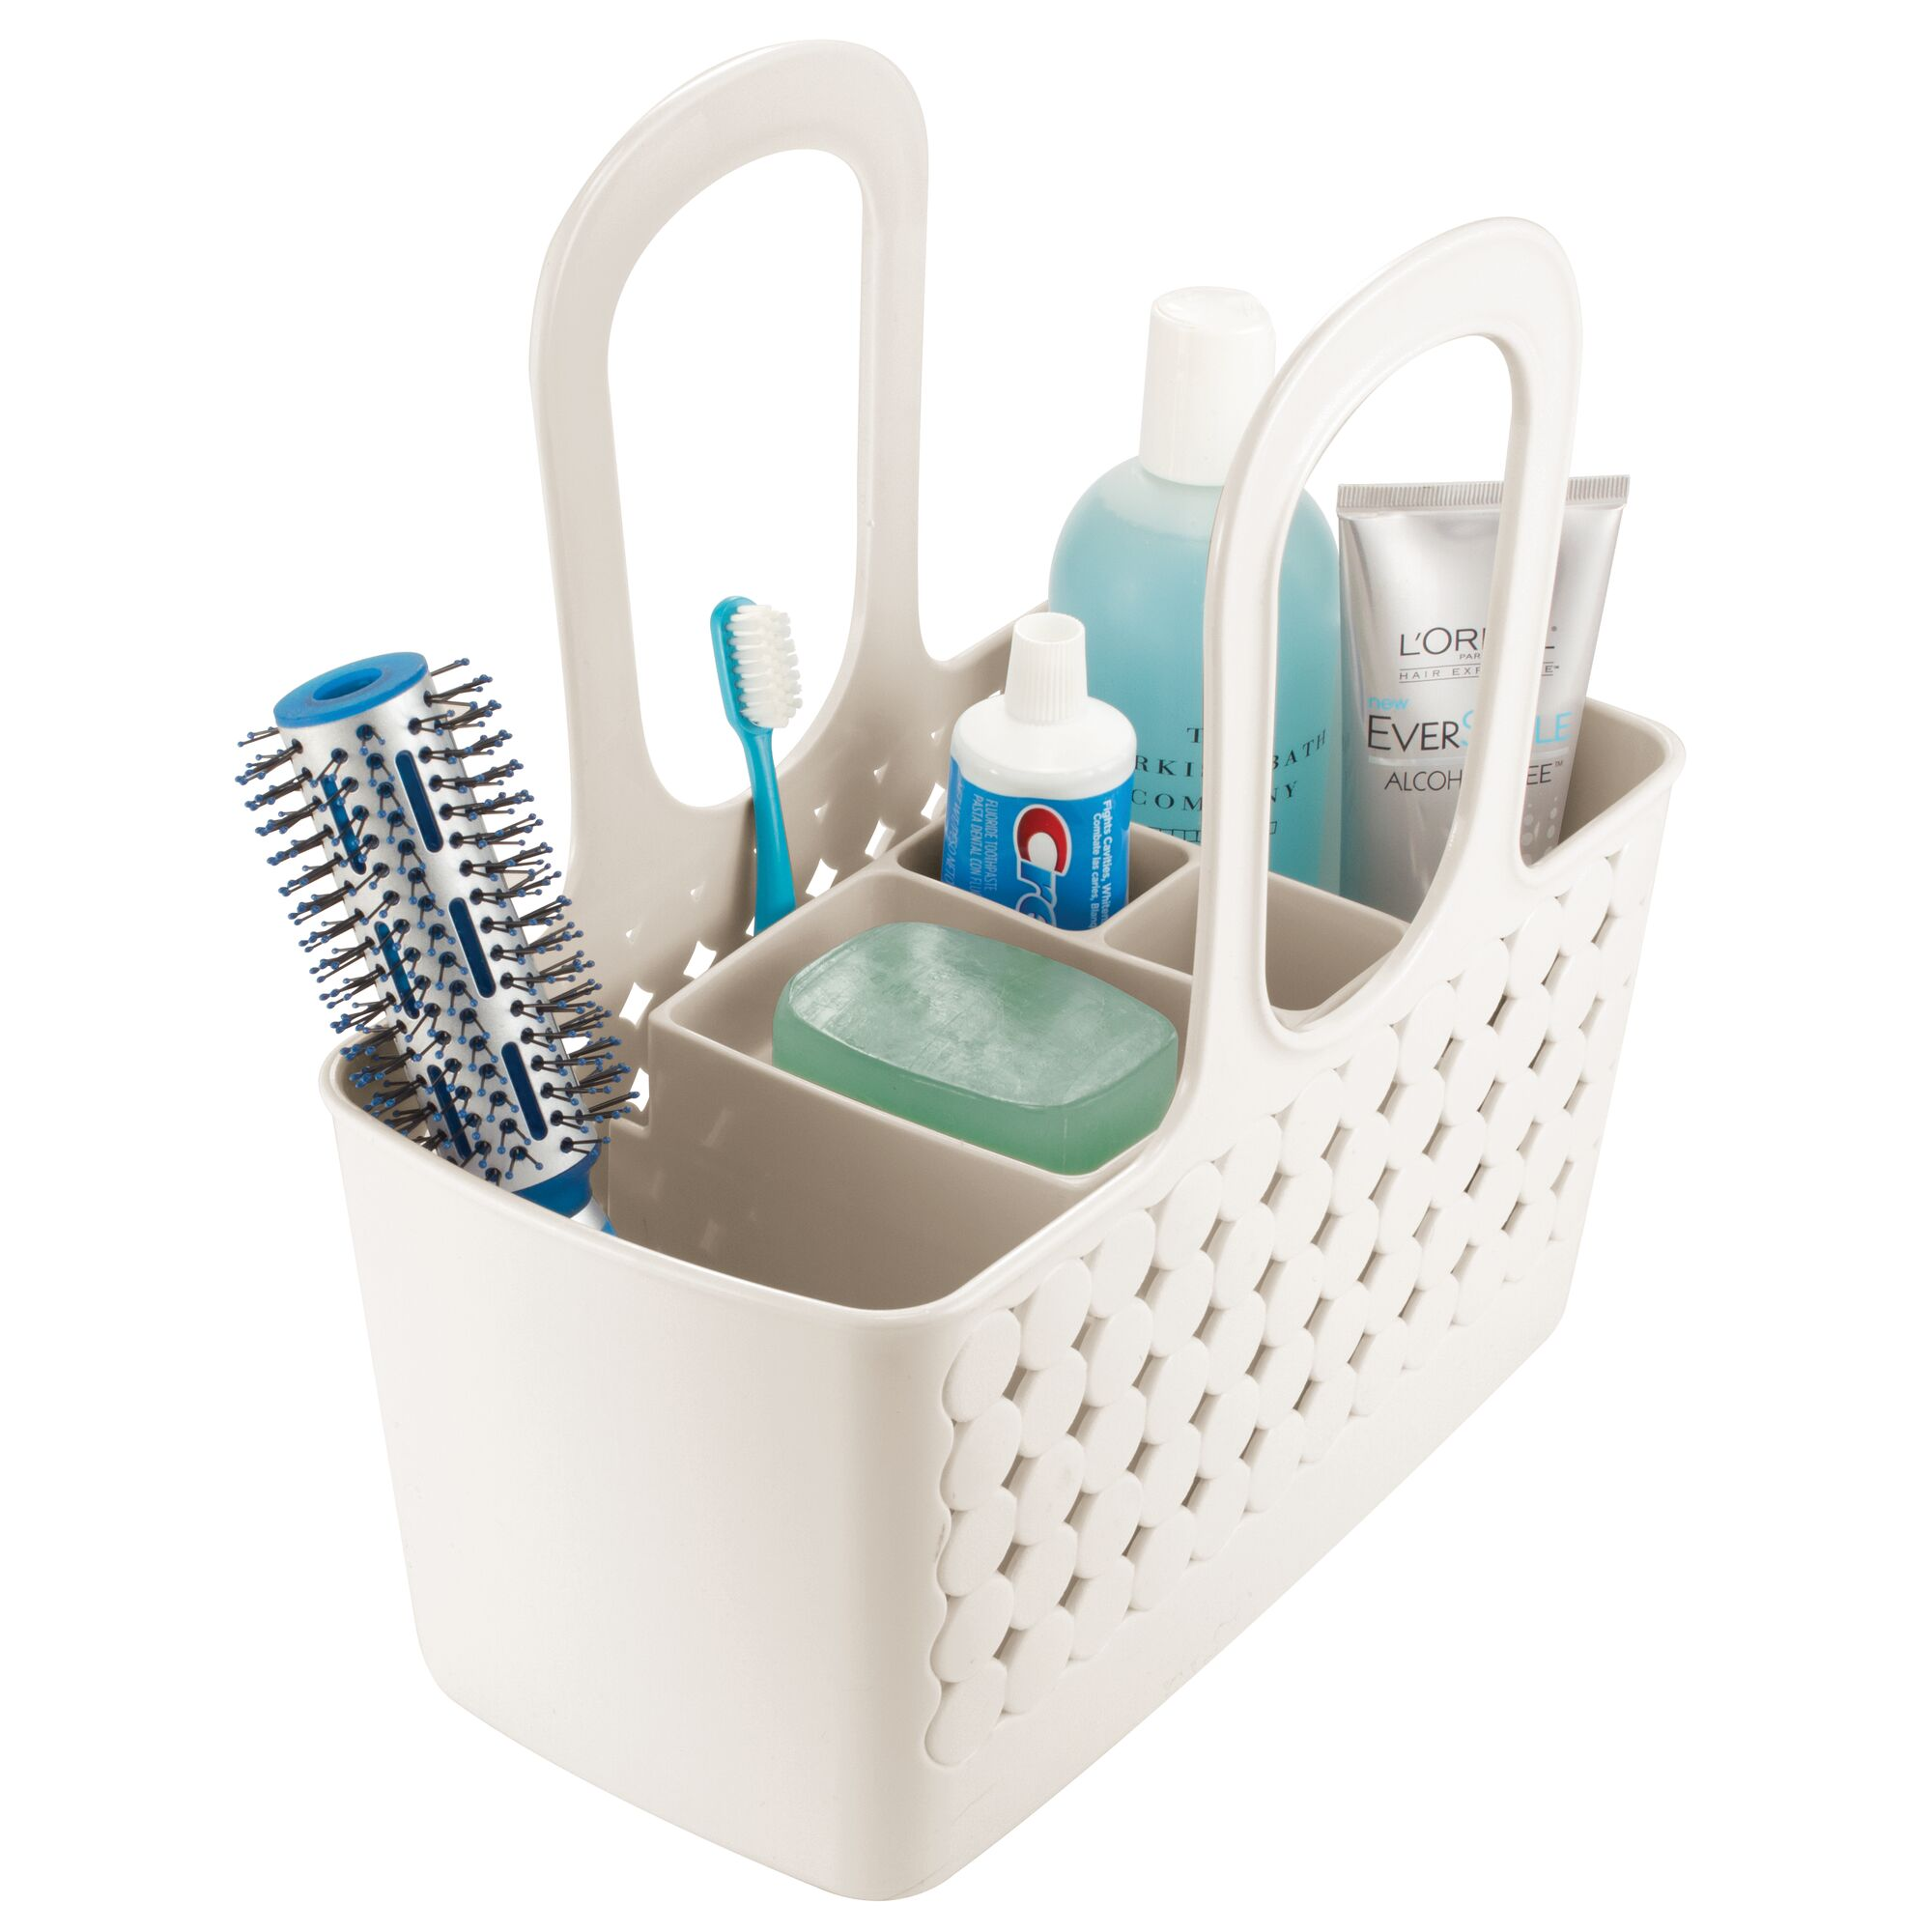 Mdesign Plastic Bathroom Shower Tote Divided College Dorm Shower